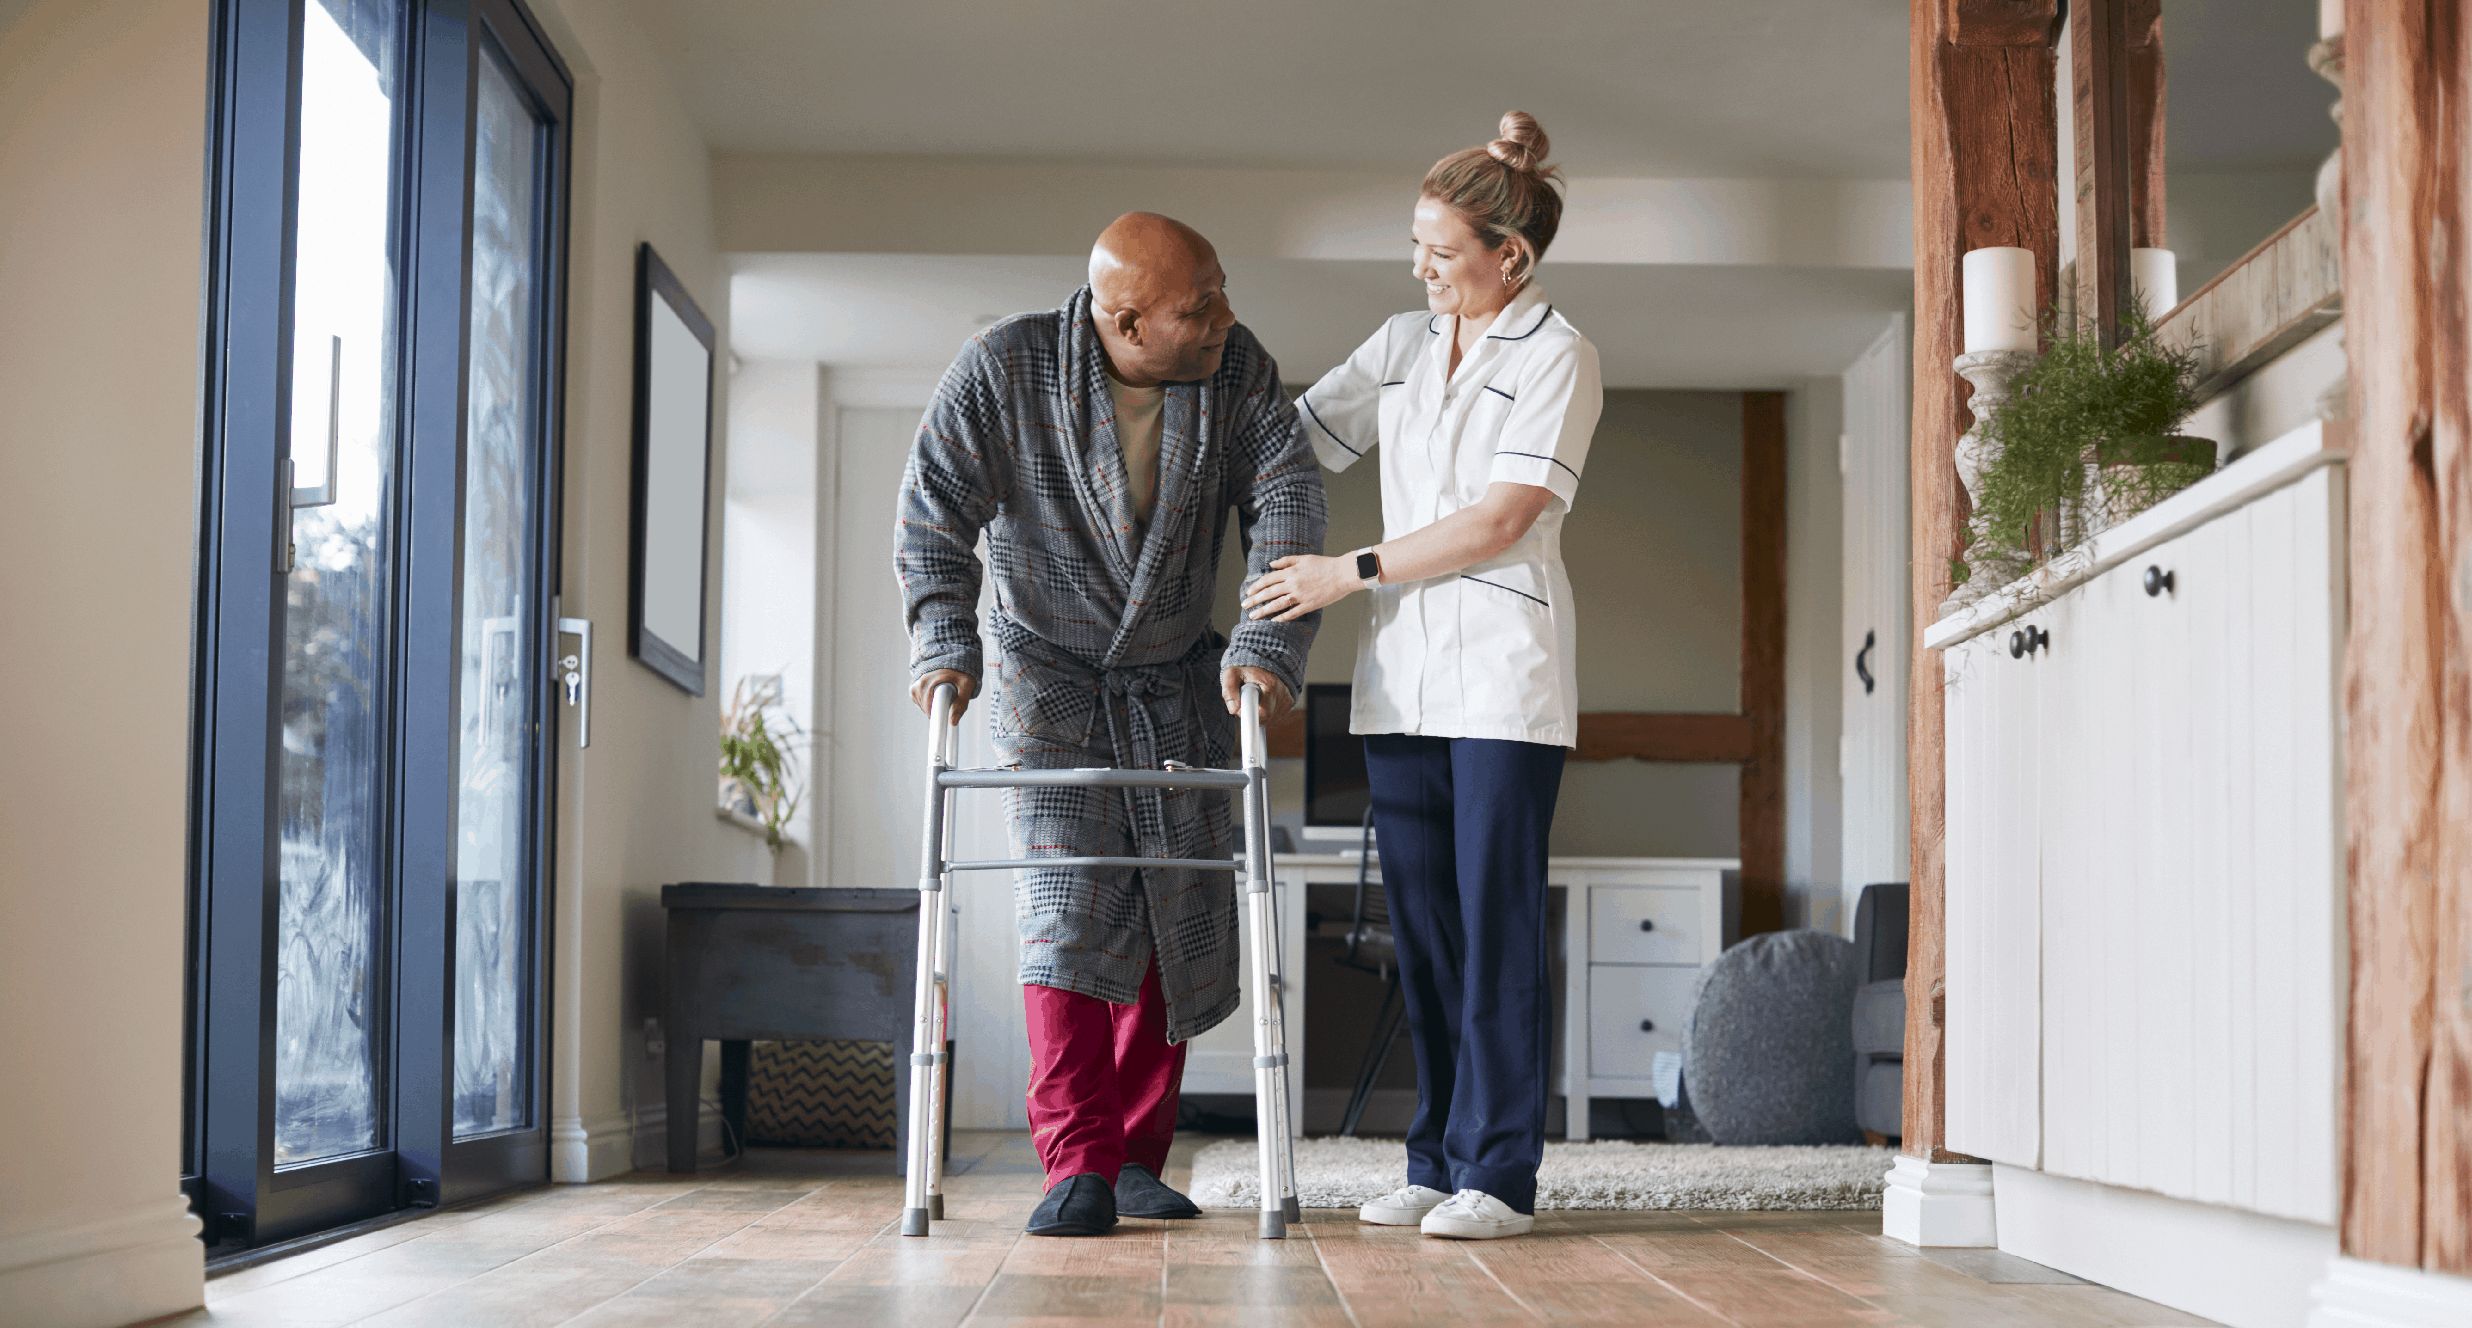 A patient being helped along the corridor by a carer